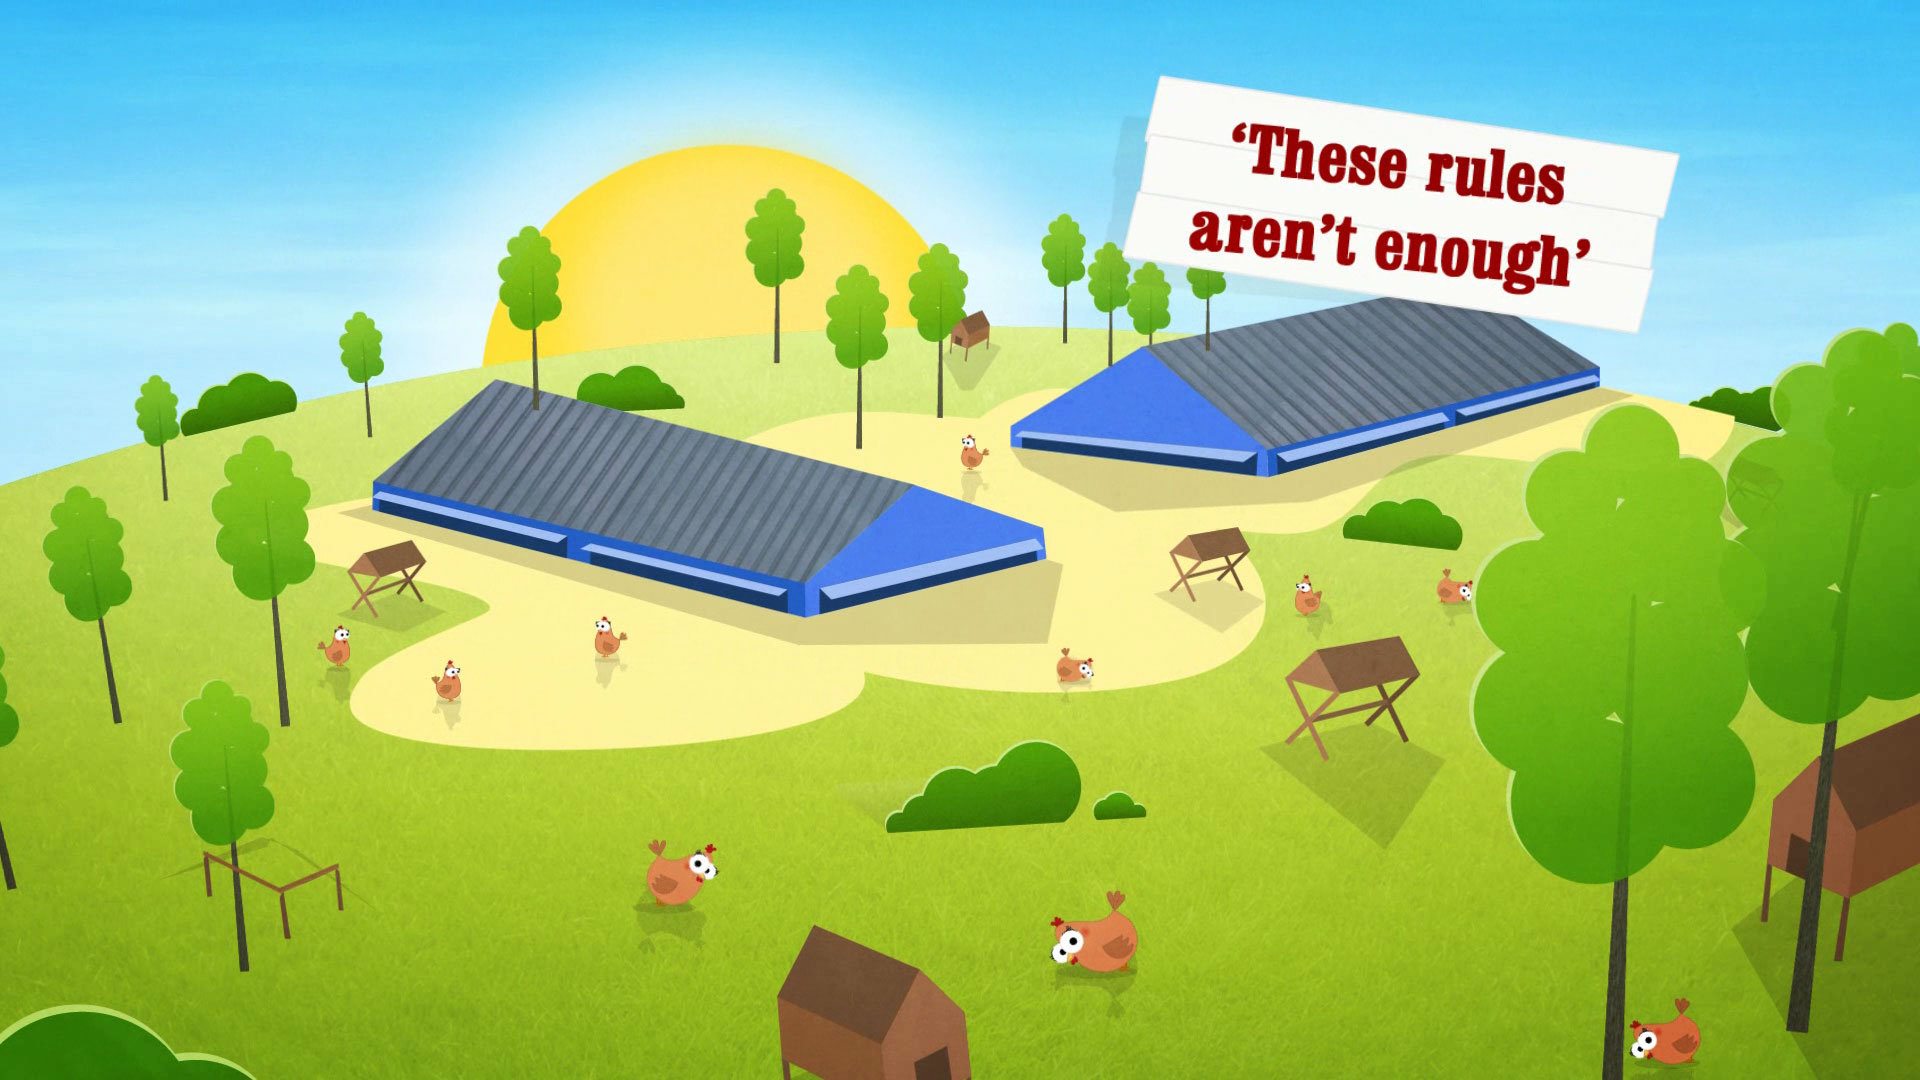 Happy hens - Brand explainer video image